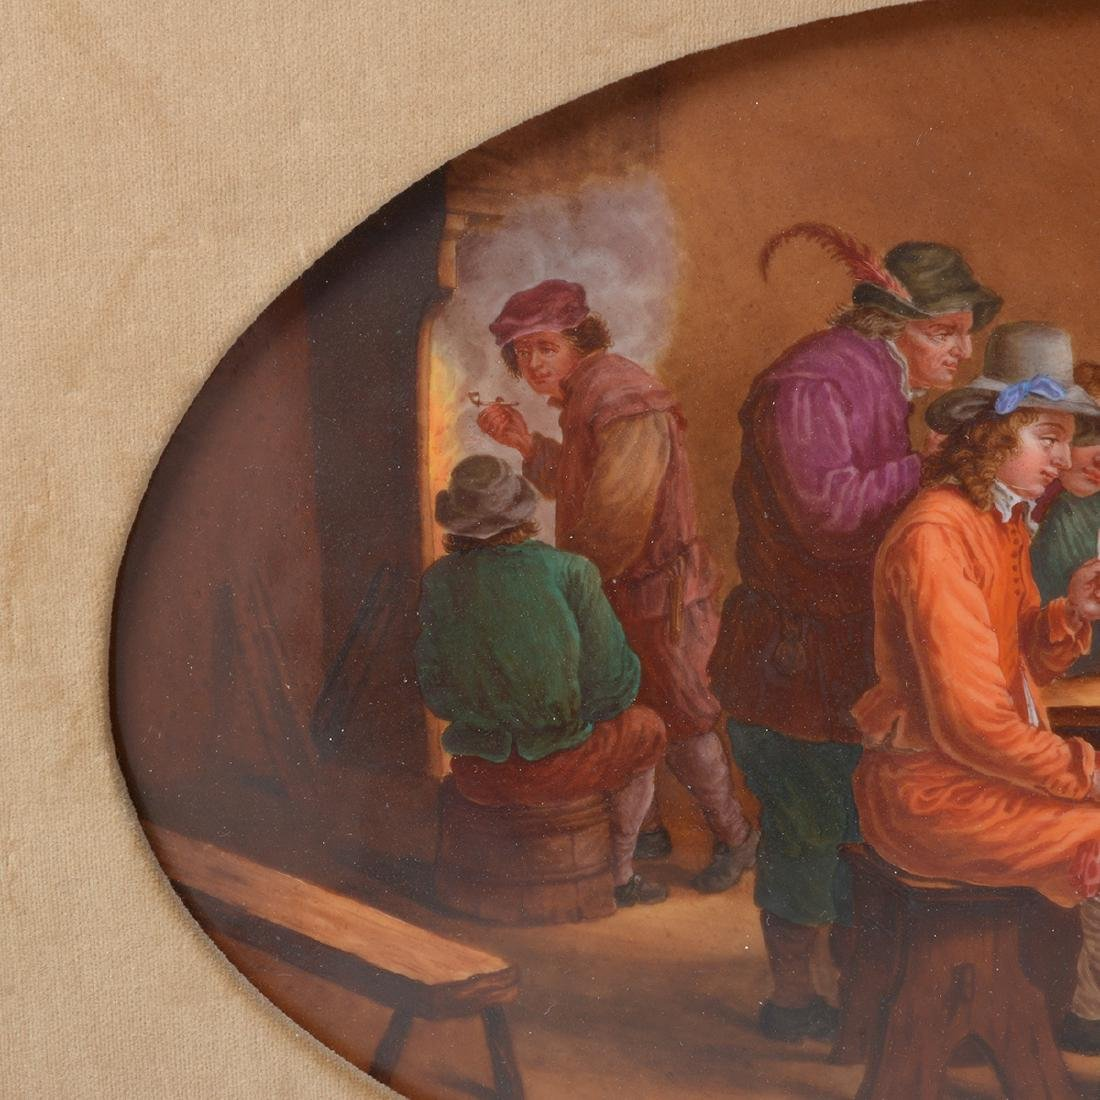 French Porcelain Plaque of Tavern Scene - 5